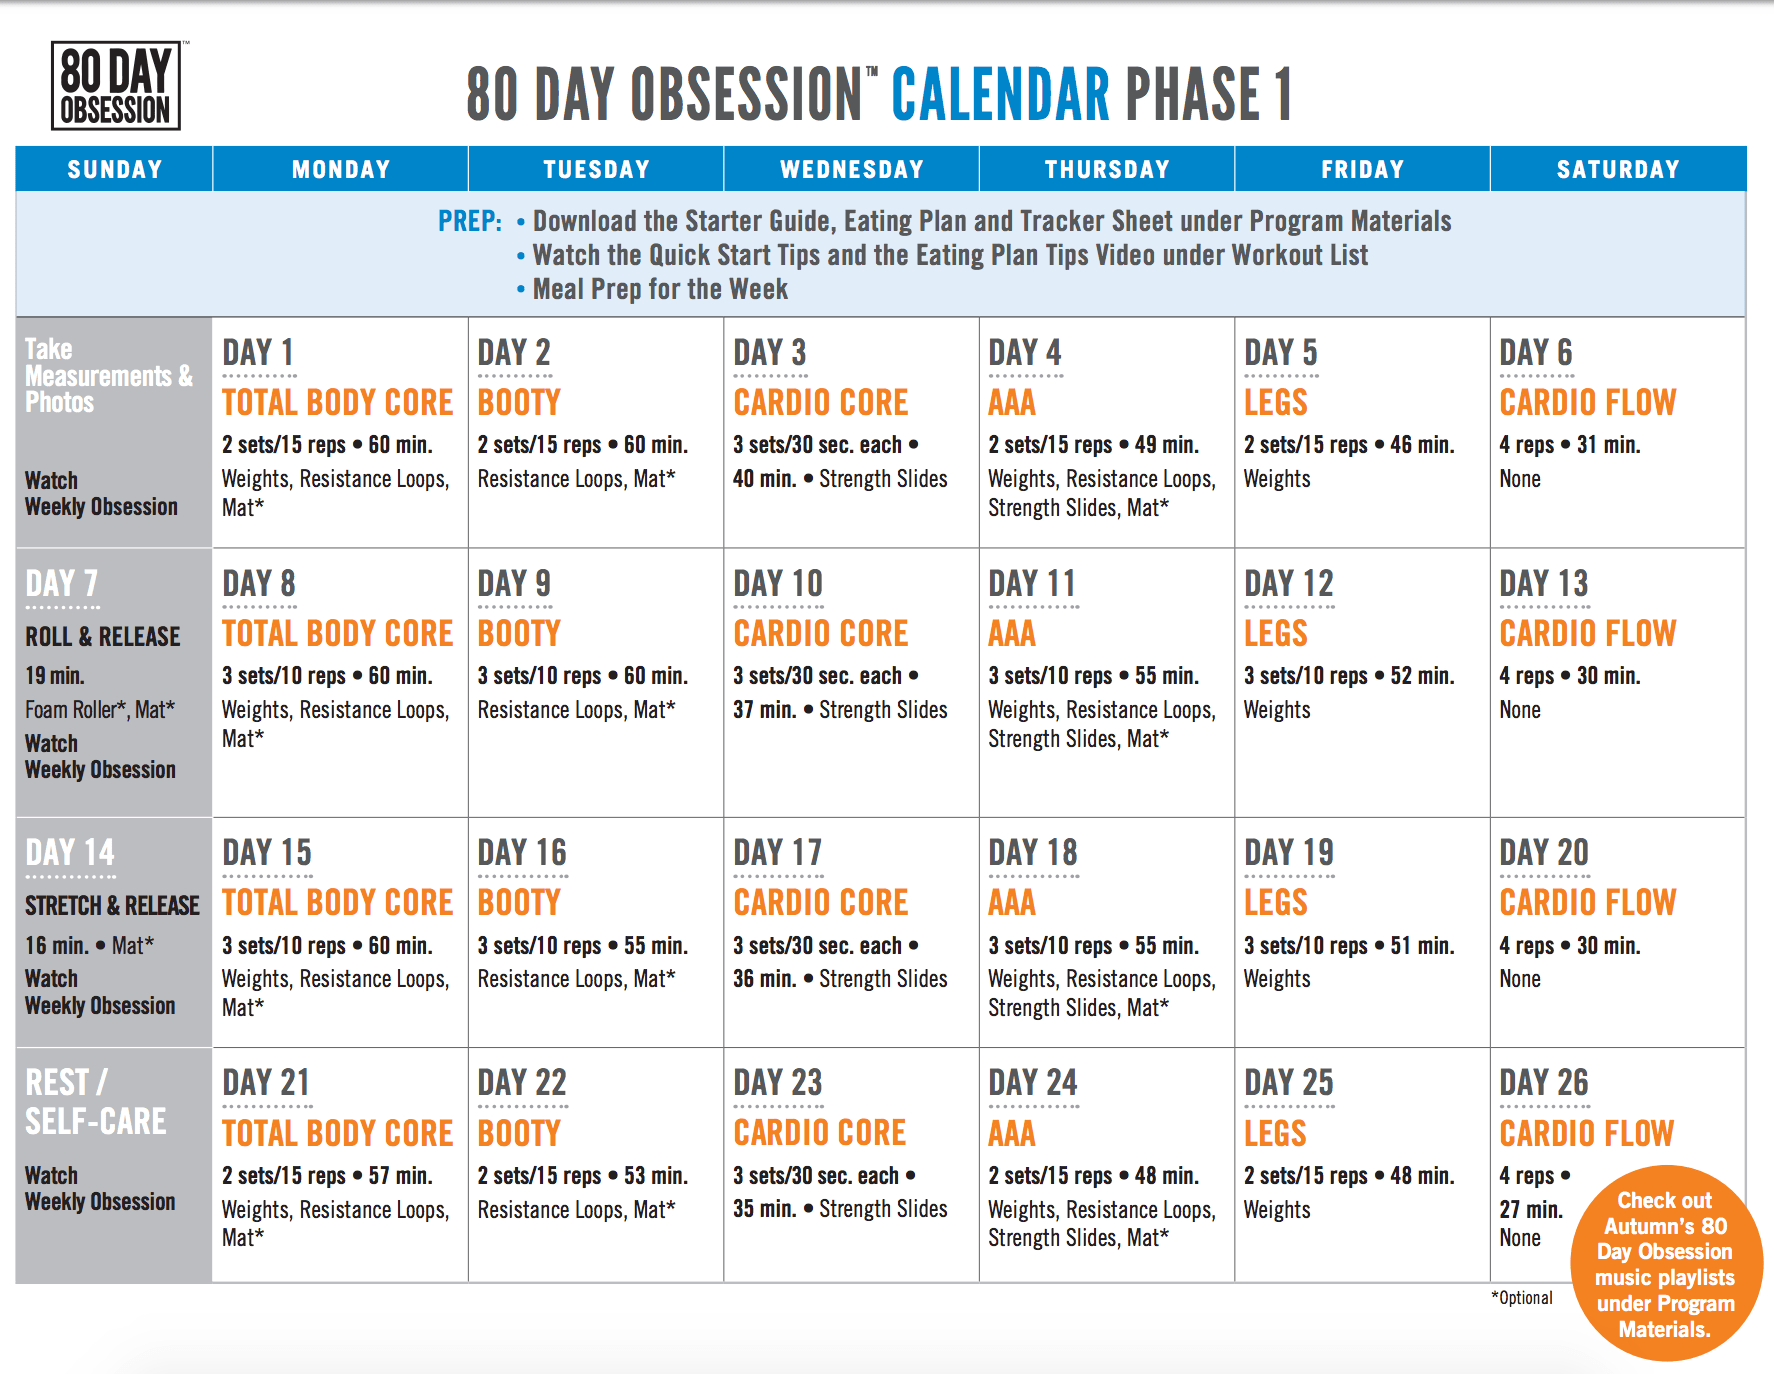 80 Day Obsession Phase 1 Calendar 1 774 1 374 Pixels